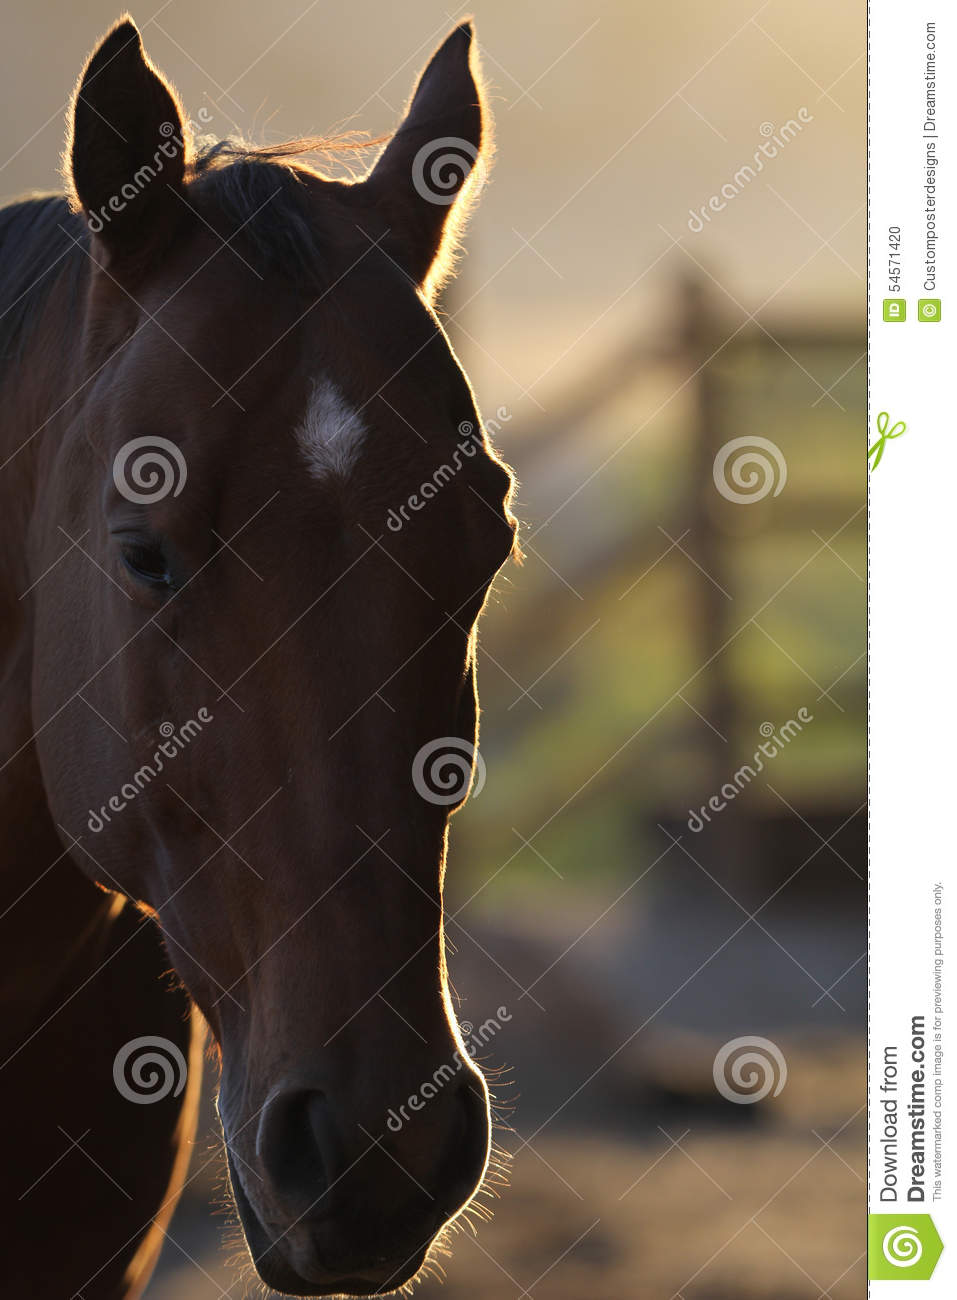 Download A silhouette of a horse. stock photo. Image of background - 54571420